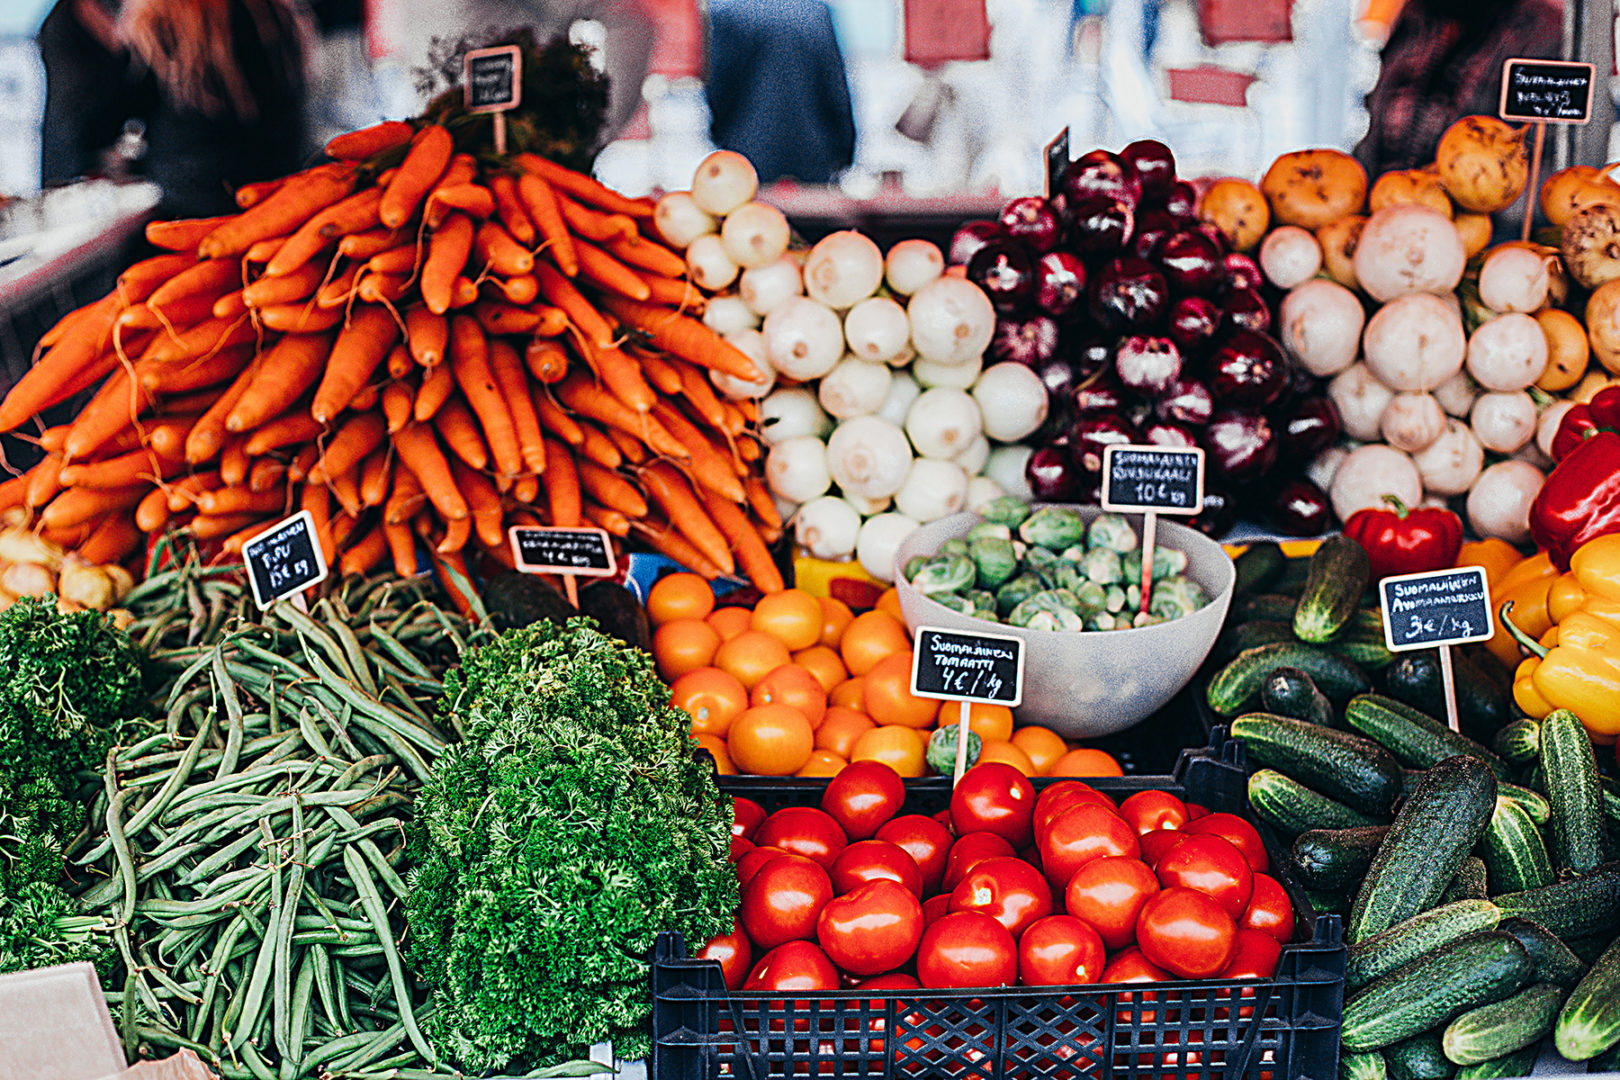 Market stand with baskets of different vegetables